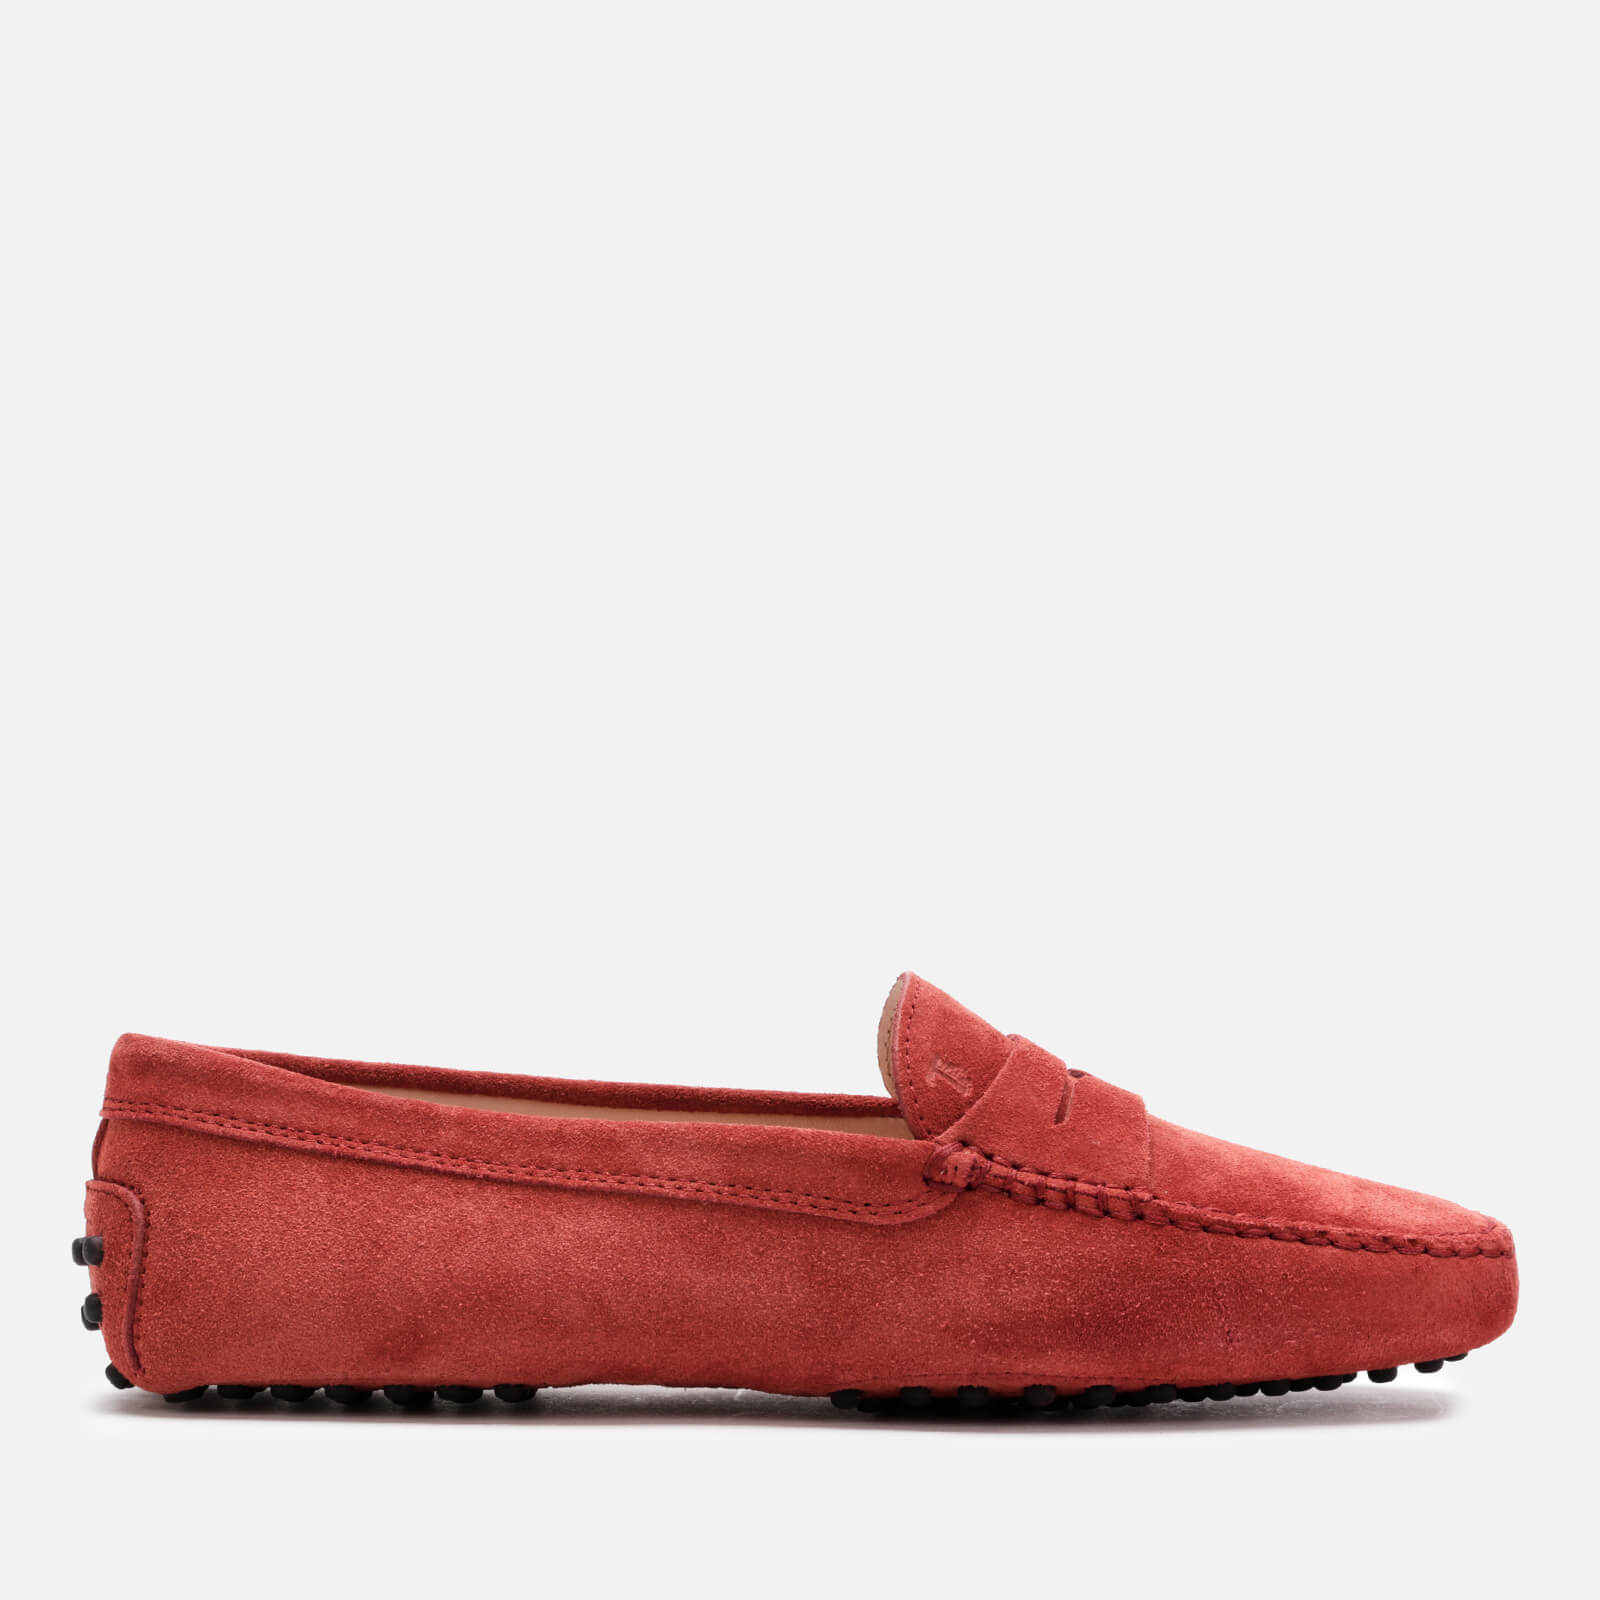 e810ad561a988 Tod's Women's Suede Gommini Loafers - Red - Free UK Delivery over £50